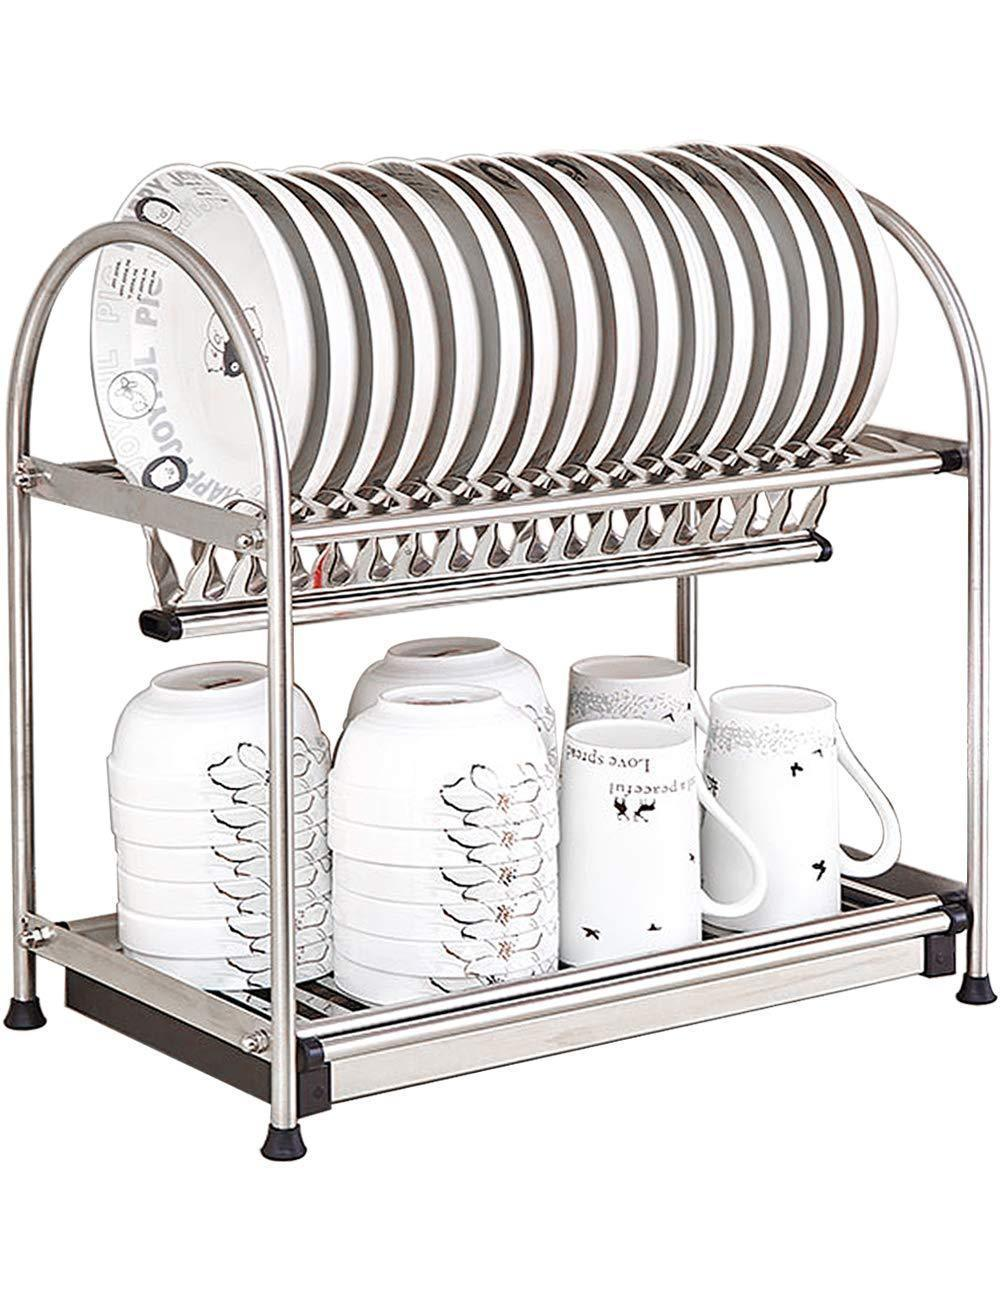 Kitchen Hardware Collection 2 Tier Dish Drying Rack Stainless Steel Stand On Countertop Draining Rack 17.9 Inch Length 16 Dish Slots Organizer with Drainboard for Cup Plate Bowl